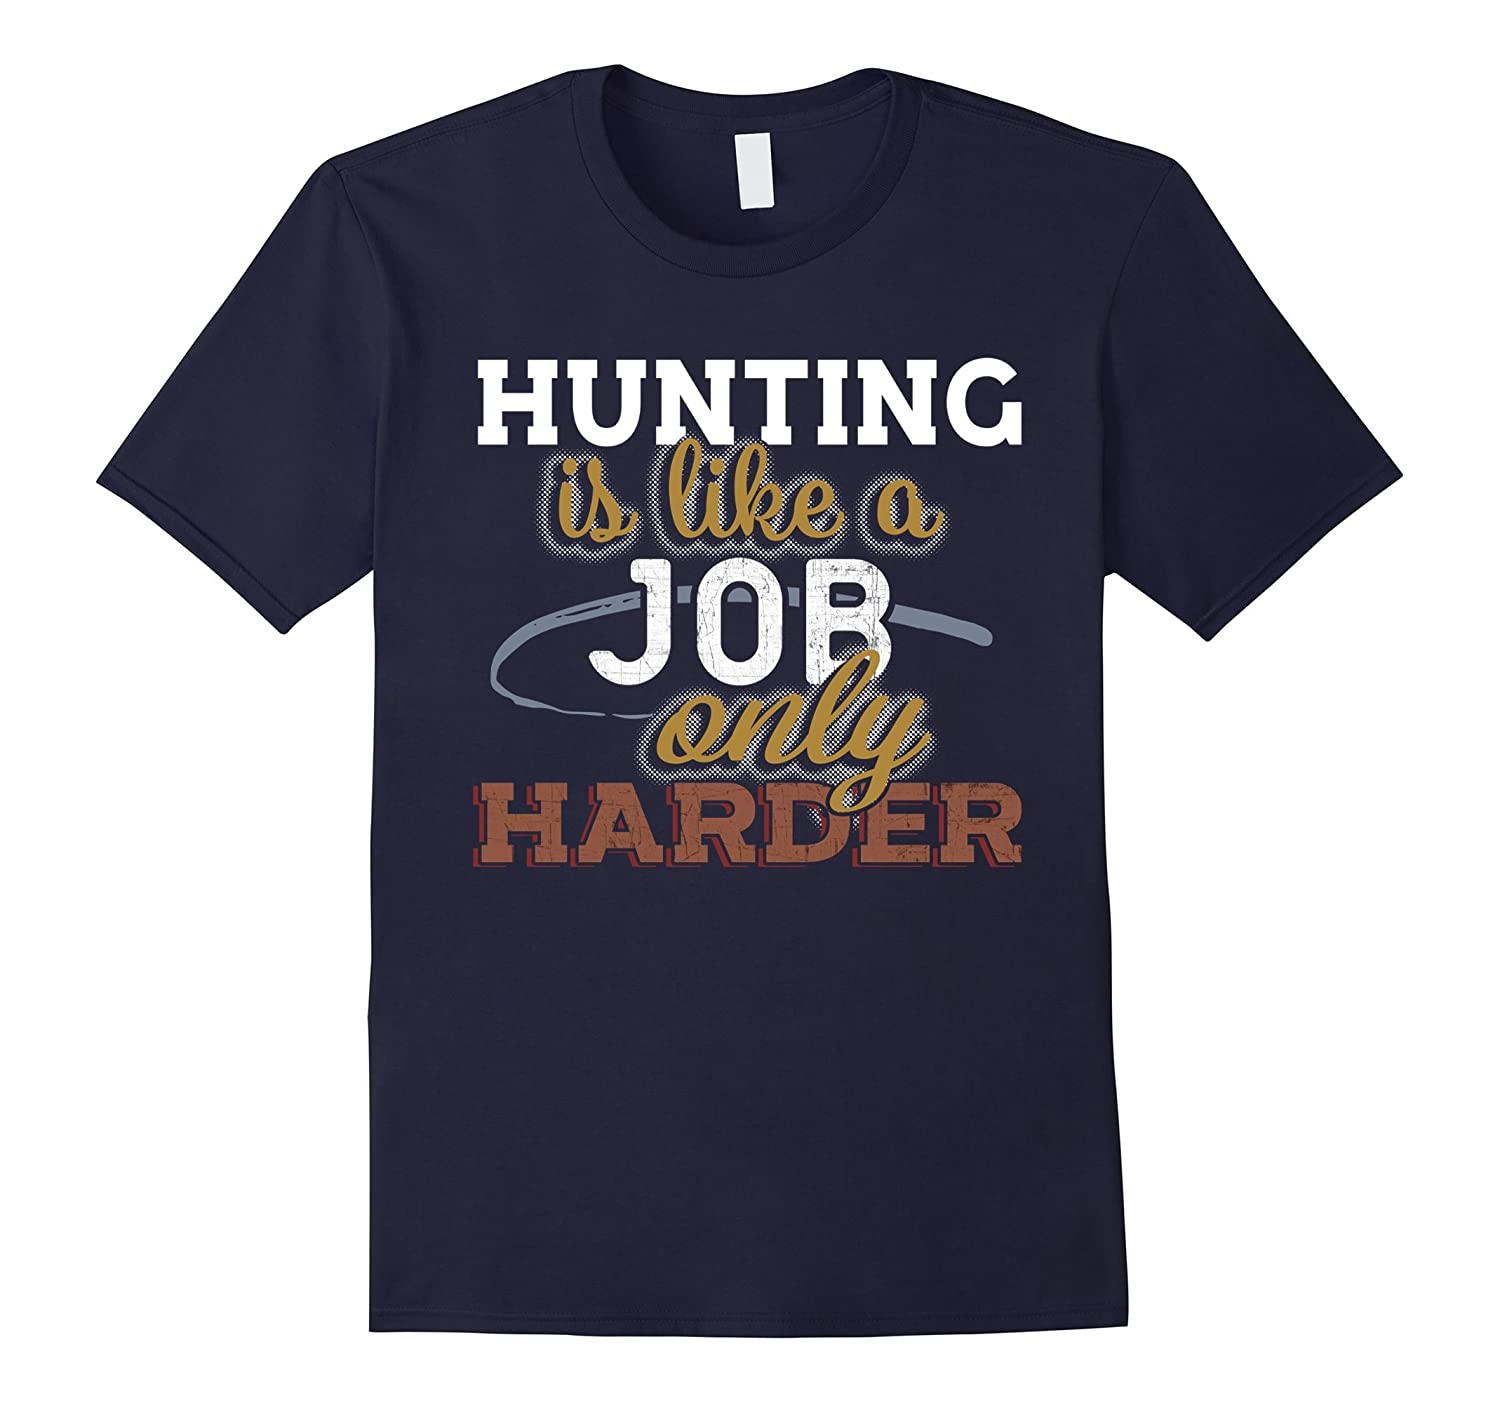 Hunting is Just Like a Job Only Harder T Shirt-TJ